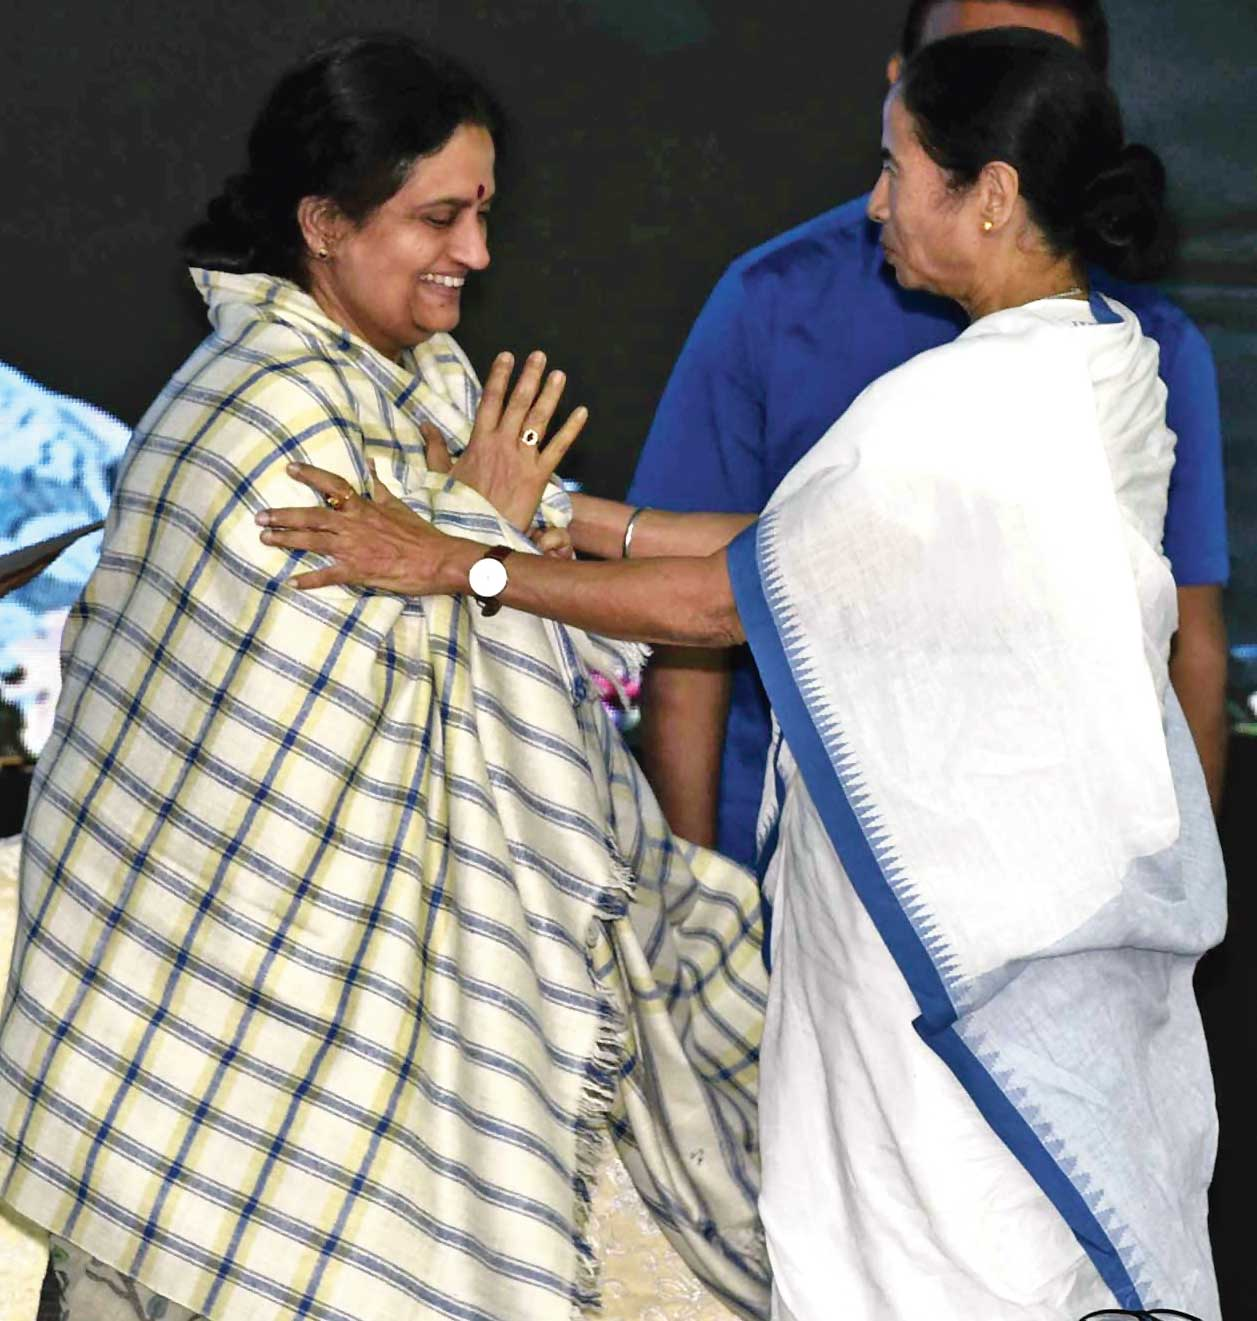 Chief minister Mamata Banerjee wraps a stole that was presented to her around Presidency University vice-chancellor Anuradha Lohia at the inauguration of the institute's campus in New Town.